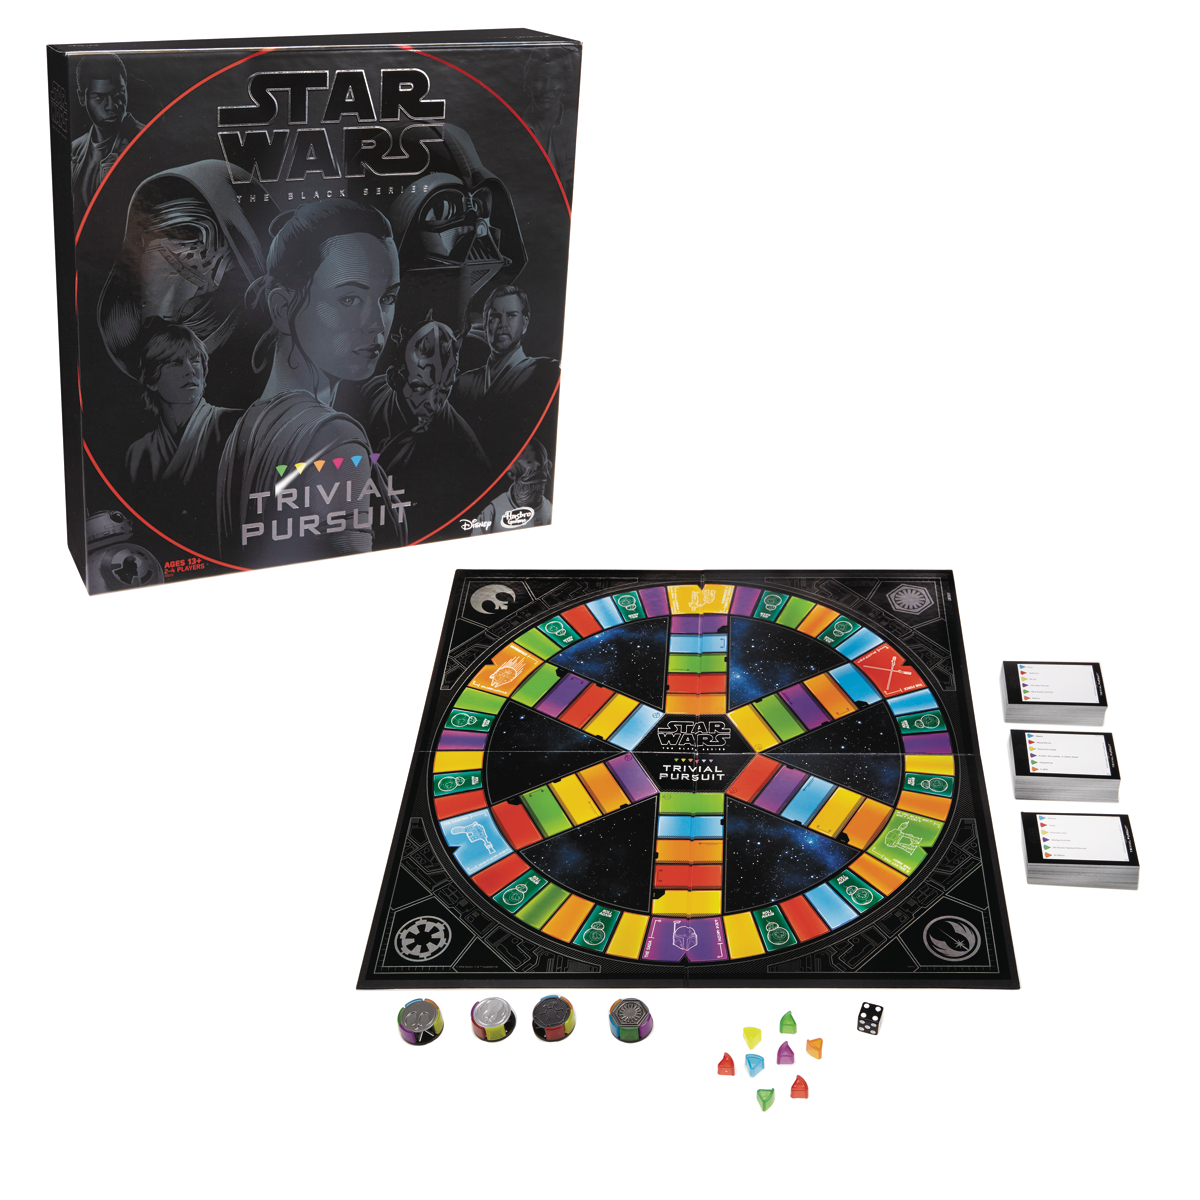 TRIVIAL PURSUIT STAR WARS GAME CS